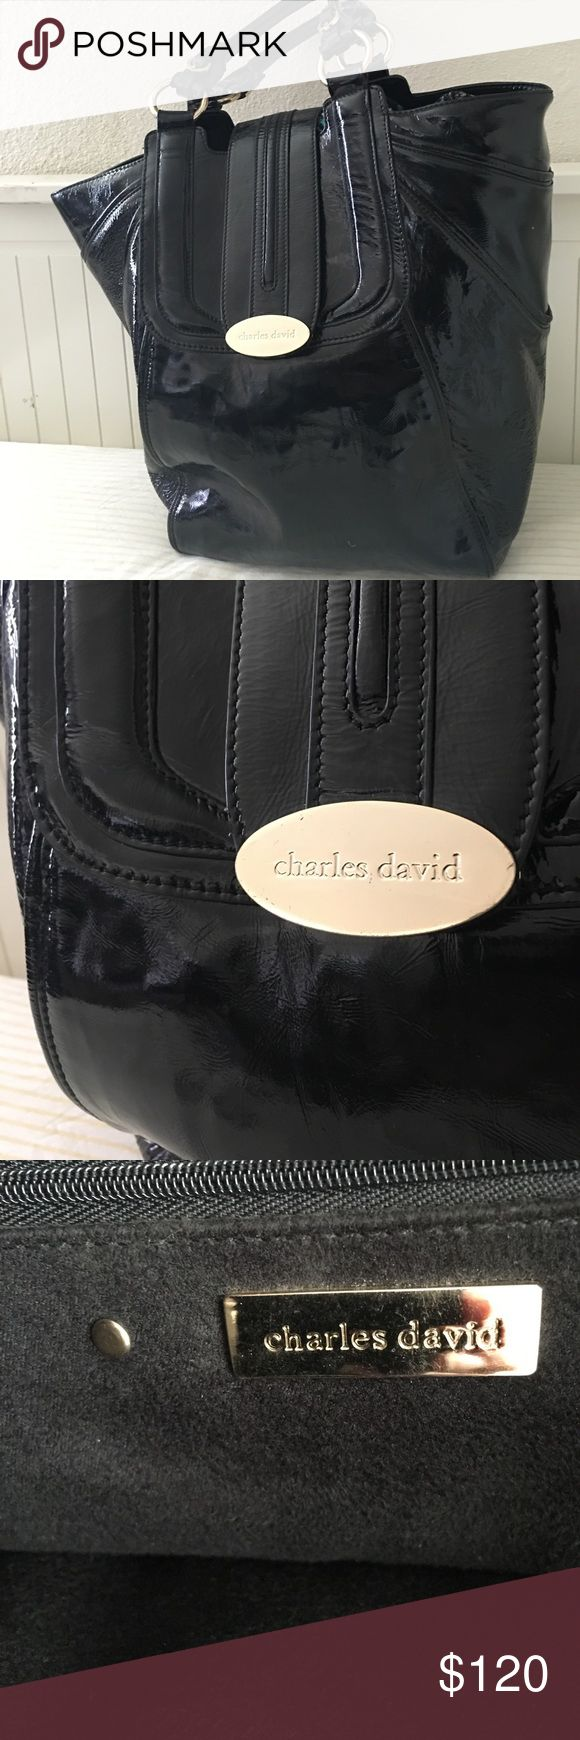 Charles David extra large patent leather handbag. This is a beautiful Charles David handbag is black patent leather on the exterior interior. Interior is black Felt cotton. Very large Beautiful handbag has gold hardware. also gently used in Great condition.... Charles David Bags Totes